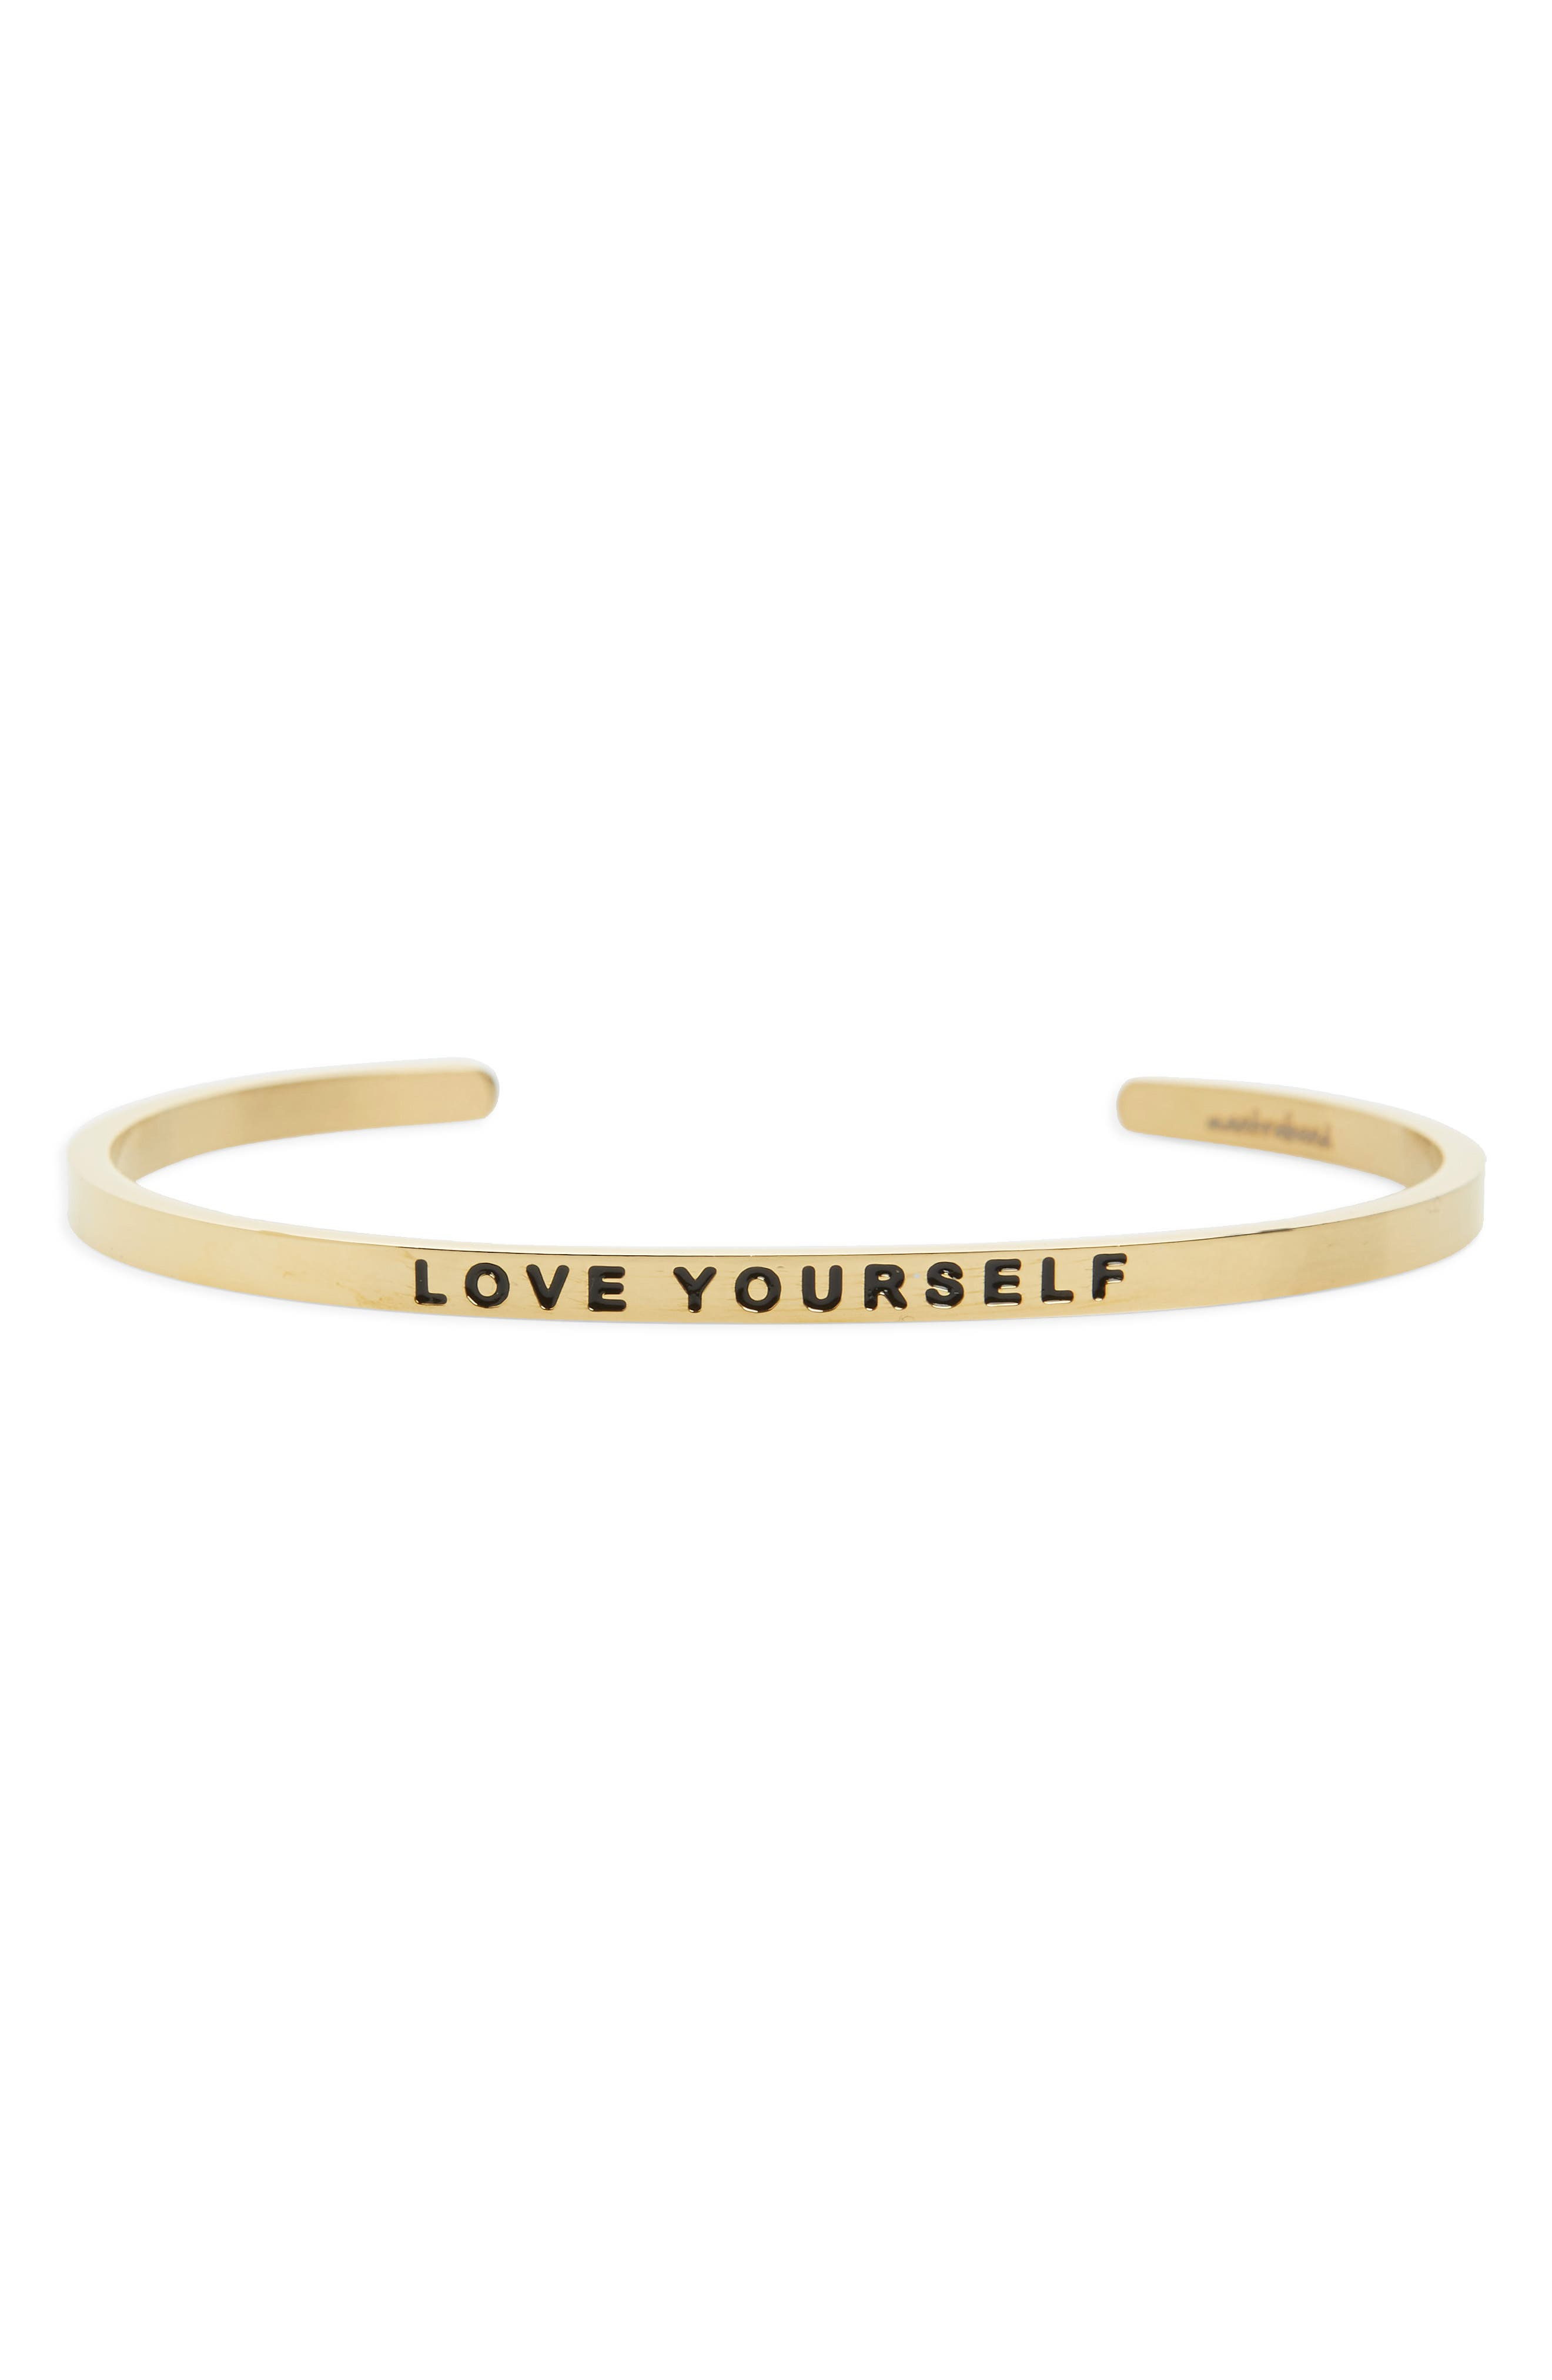 MANTRABAND Love Yourself Engraved Cuff